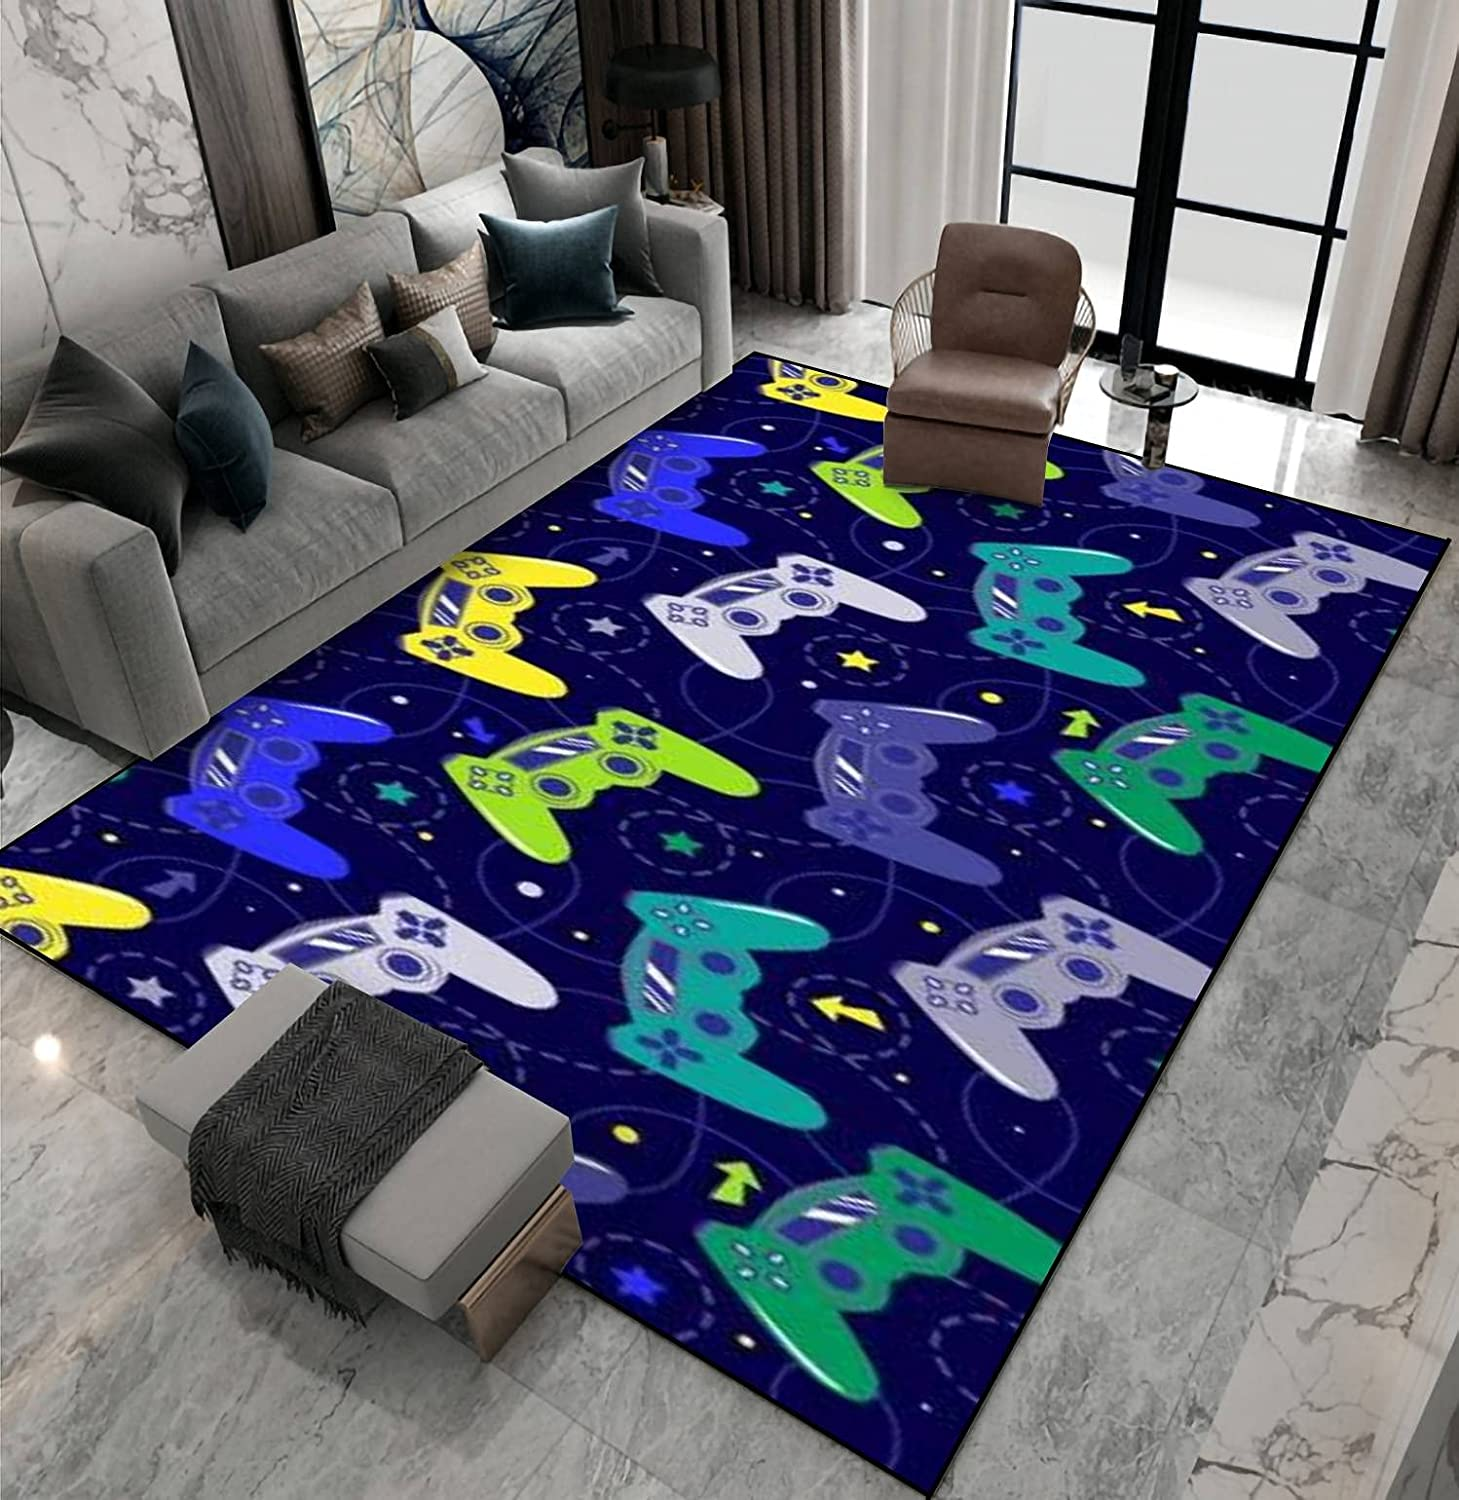 Area Rug Non-Slip Floor OFFicial shop Detroit Mall Mat joystic with Bright Seamless Pattern